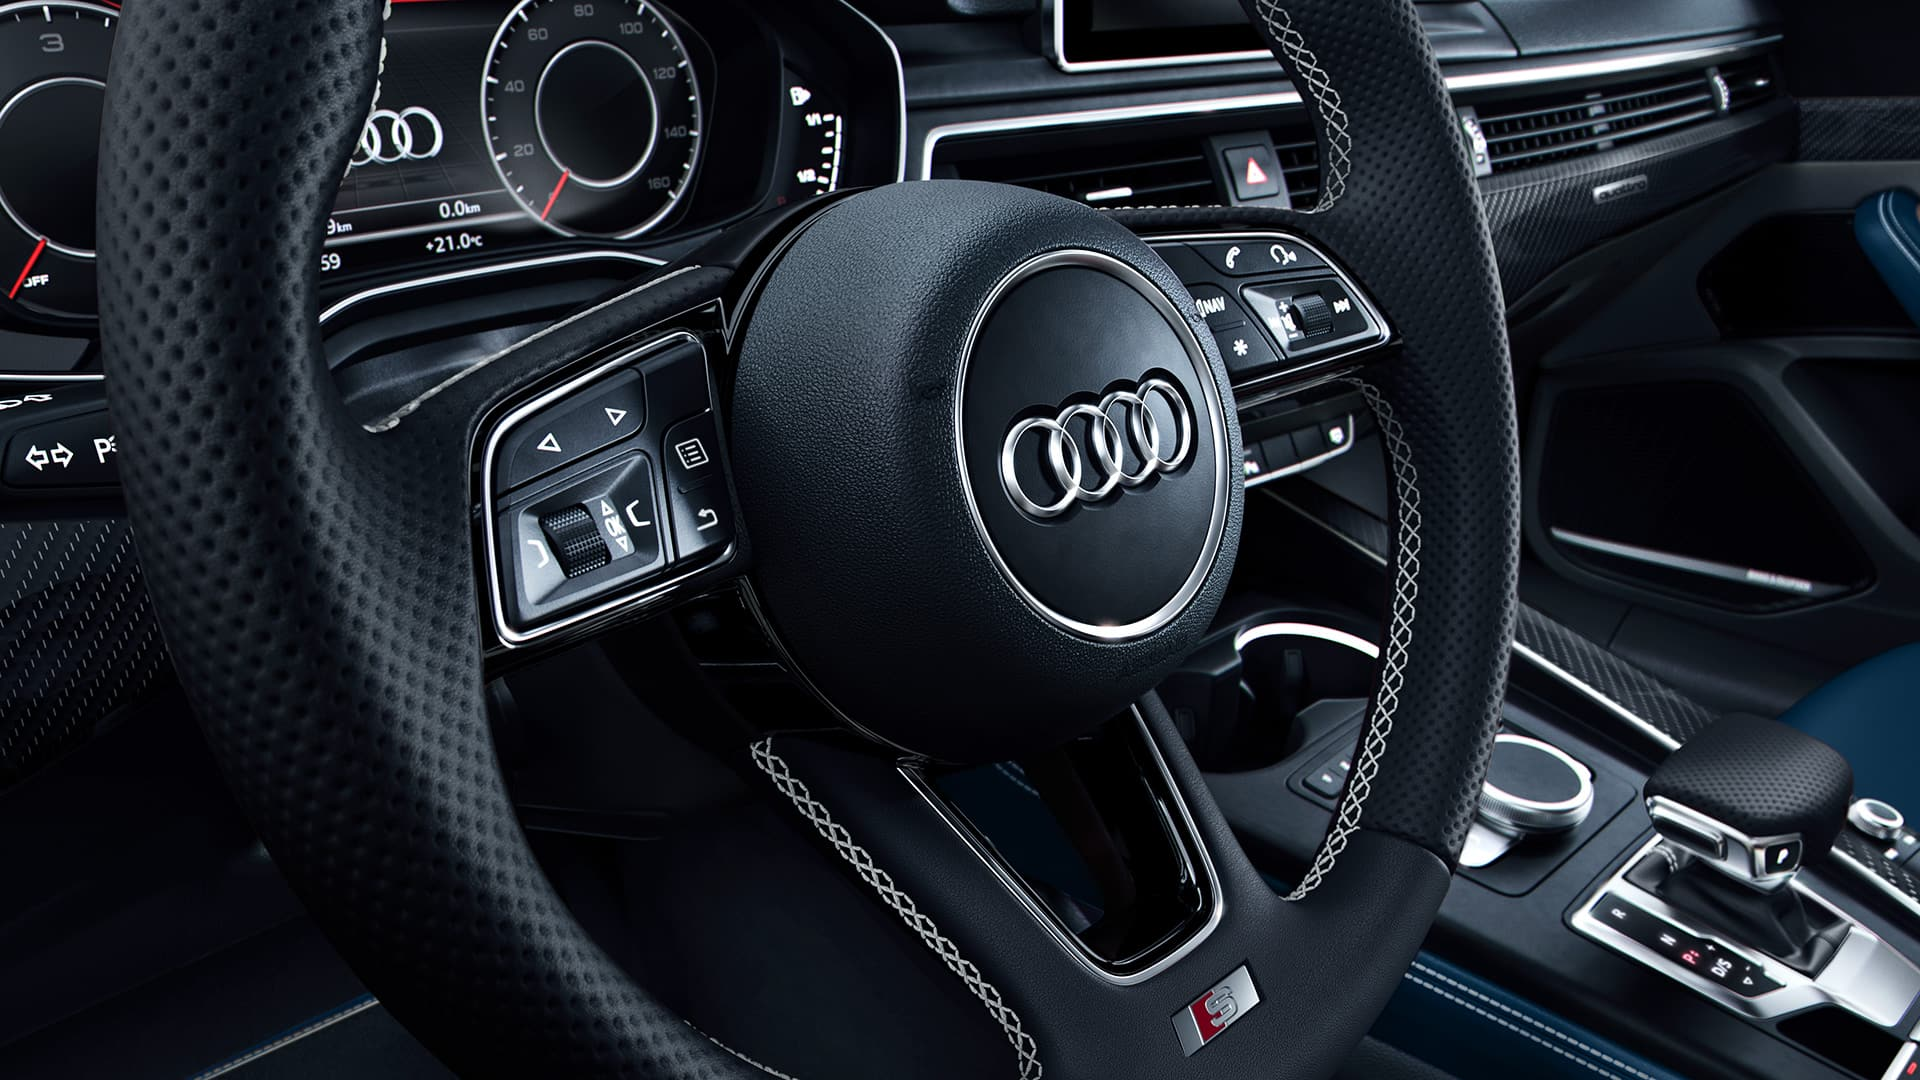 Audi virtual cockpit in de Audi S5 Sportback